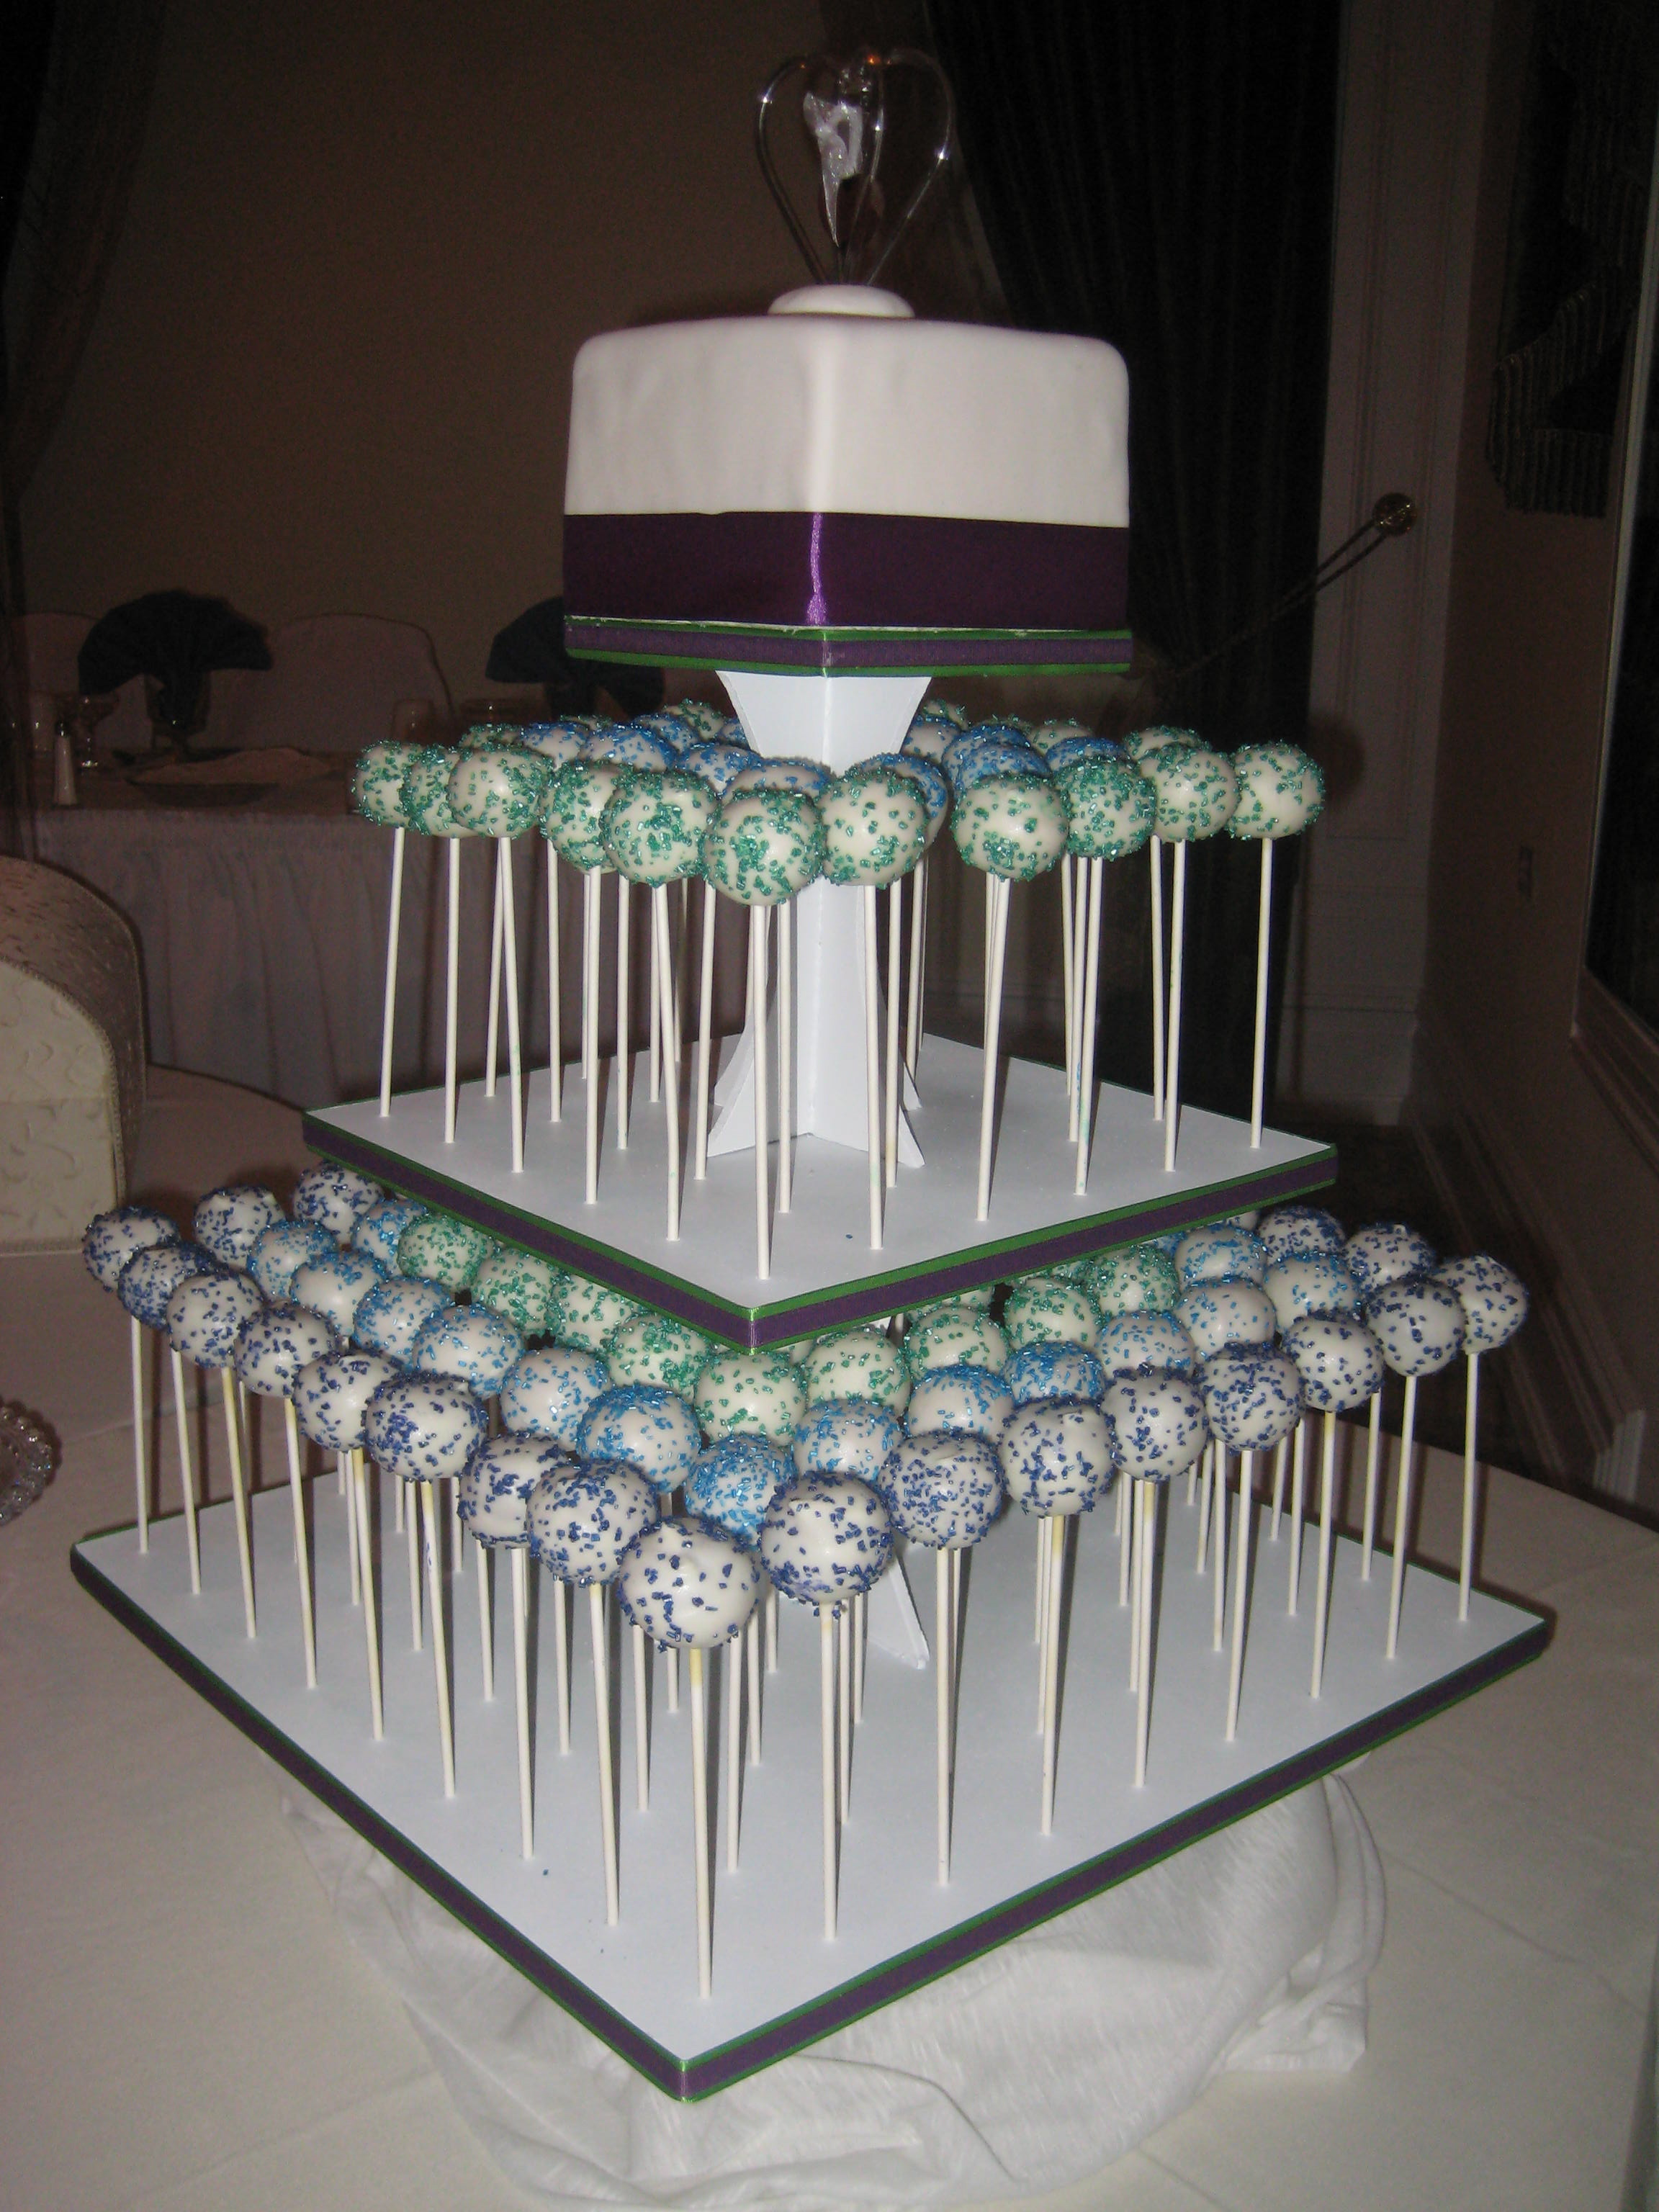 Not My First Cake Pop But Wedding It Was For Good Friends Kim And Randy So I Knew They Couldnt Hate Me If Didnt Come